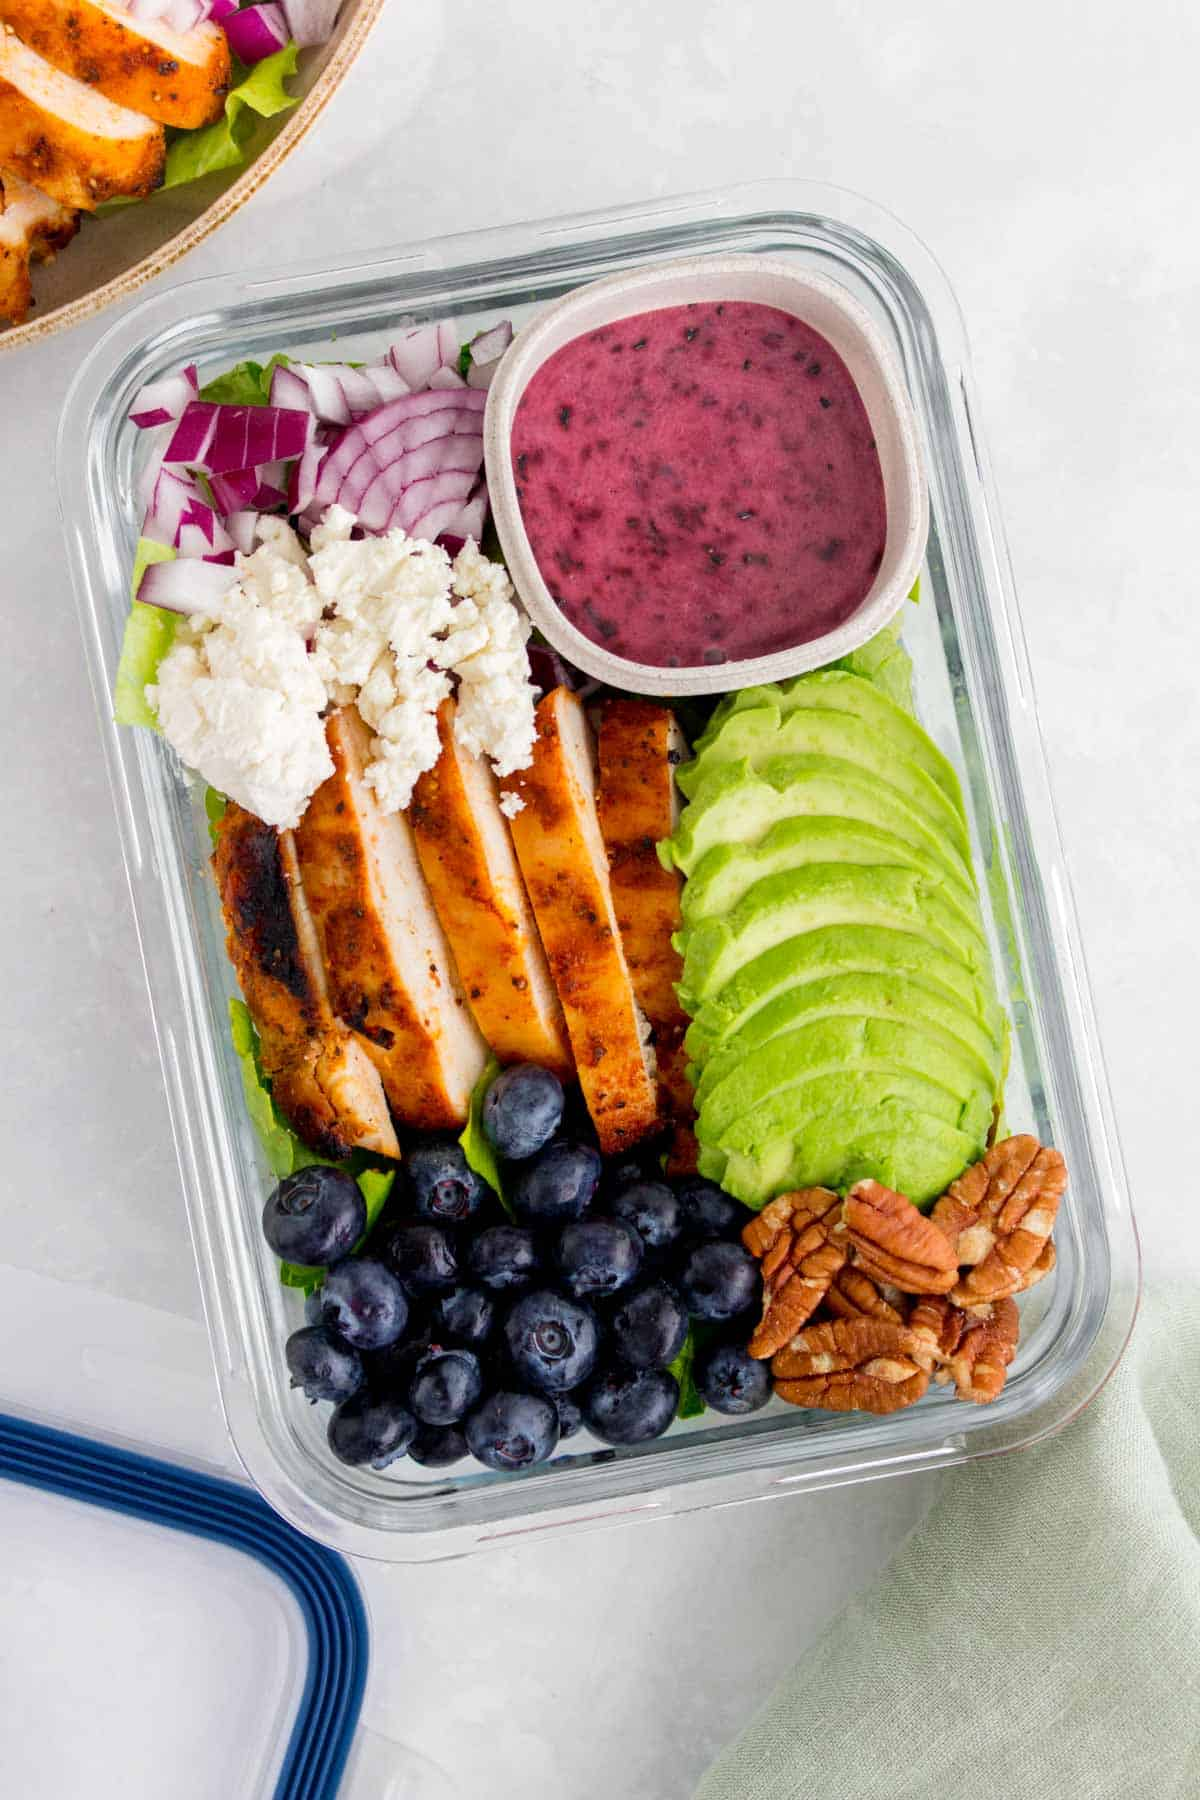 Meal prep container with grilled chicken salad with blueberries, pecans, onions, avocado, and goat cheese with a blueberry vinaigrette.